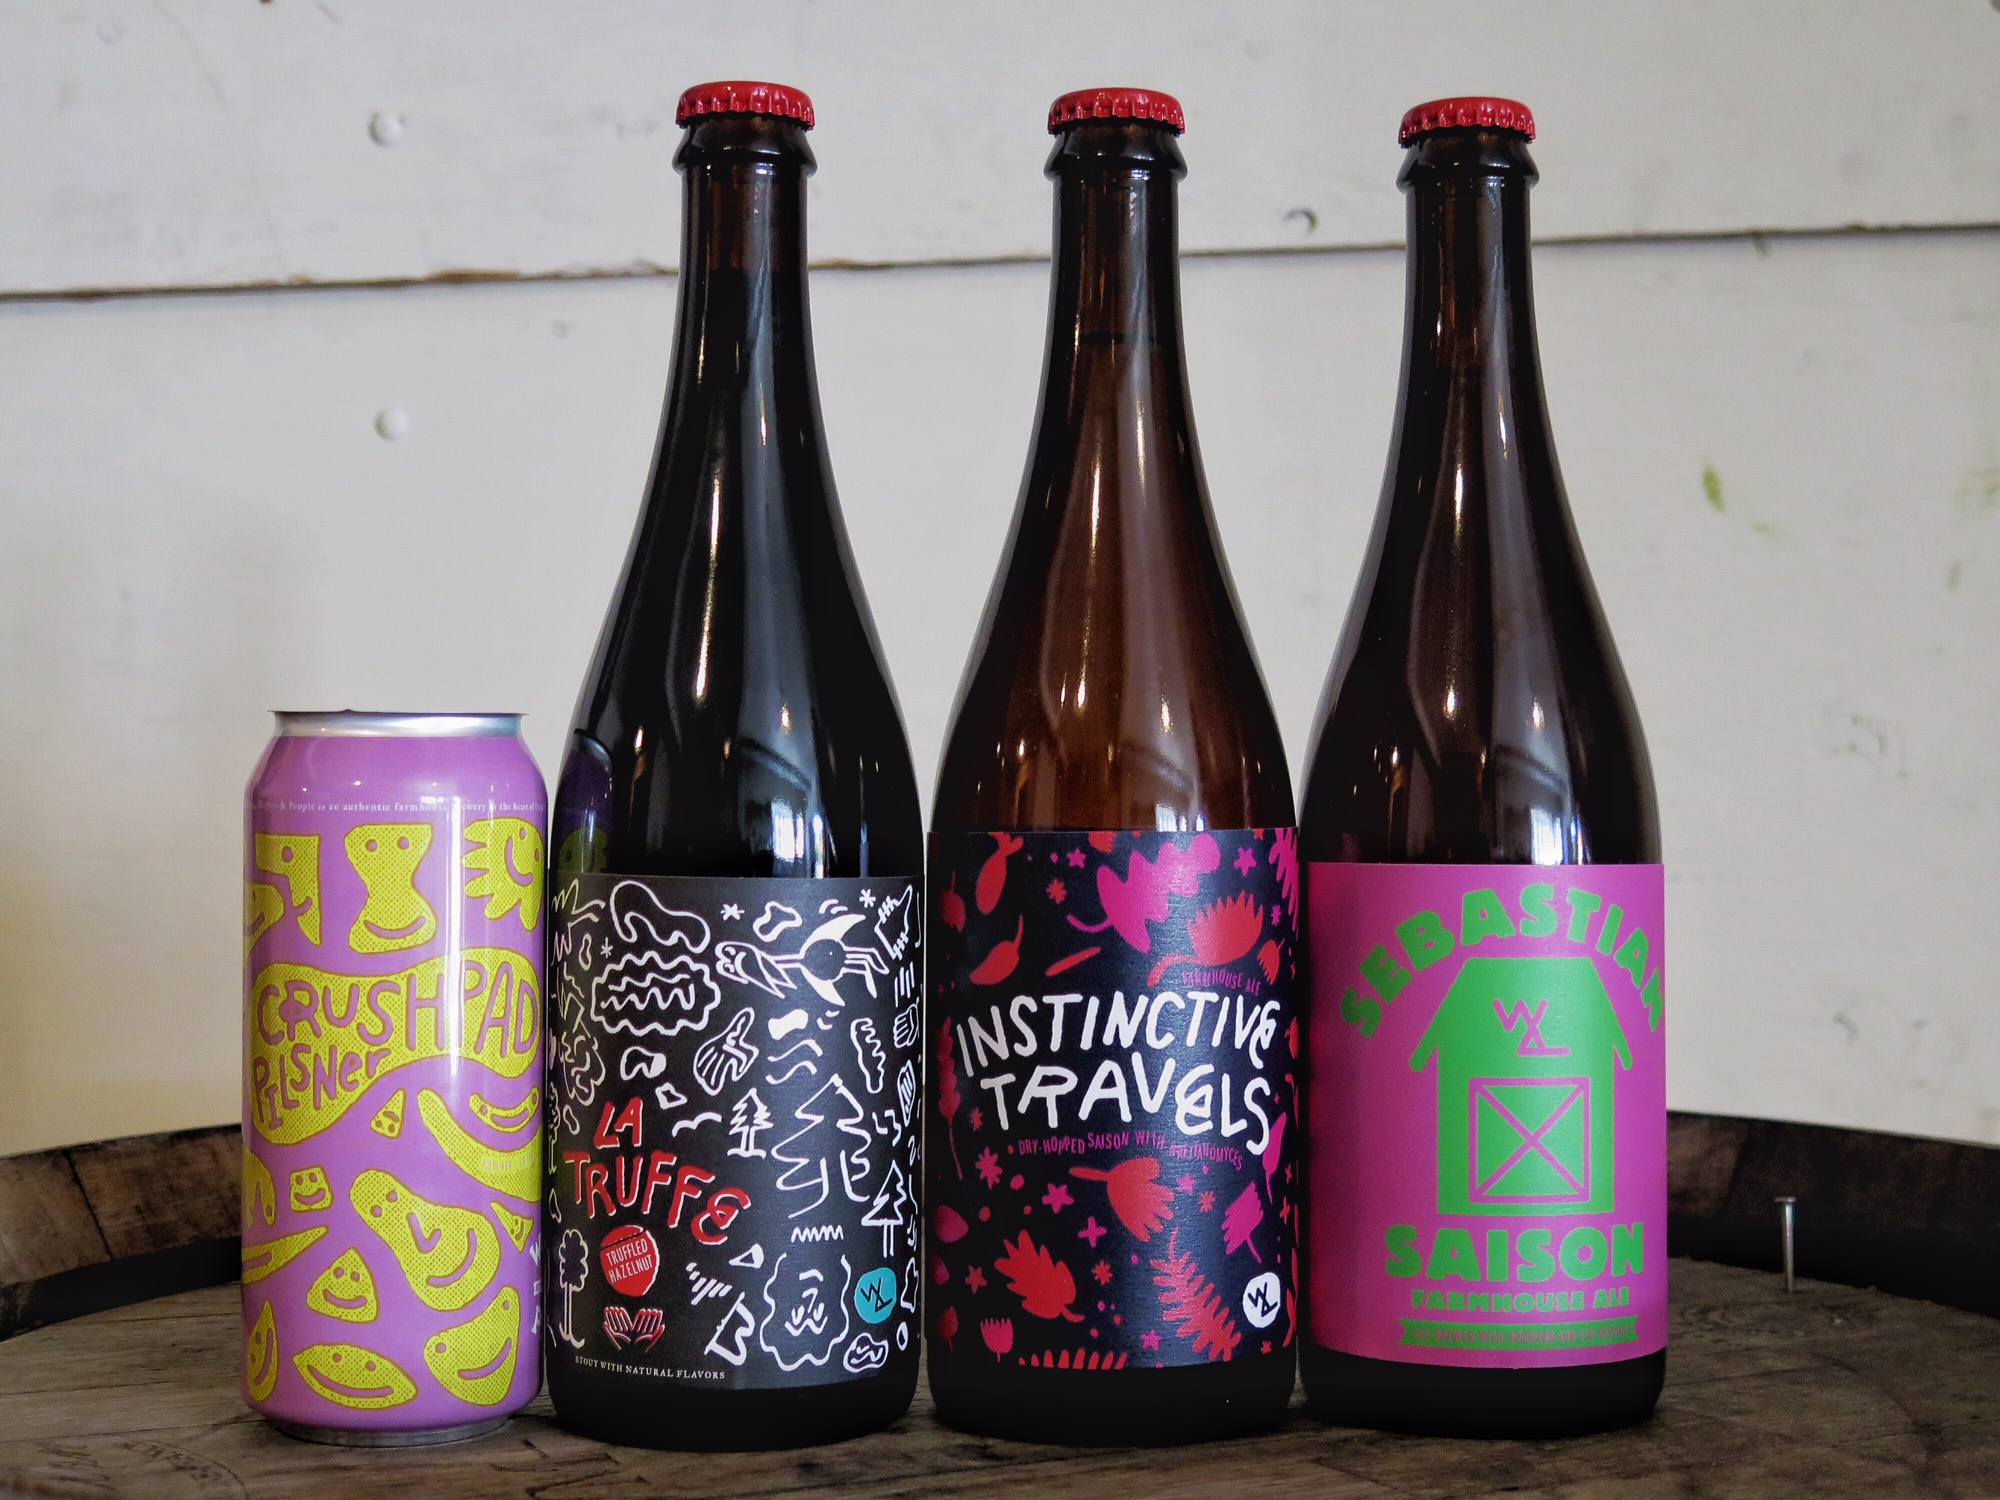 New releases from Wolves & People Farmhouse Brewery include Crush Pad Pilsner, La Truffe, Instinctive Travels, and Sebastian Saison. (photo courtesy of Wolves & People Farmhouse Brewery)